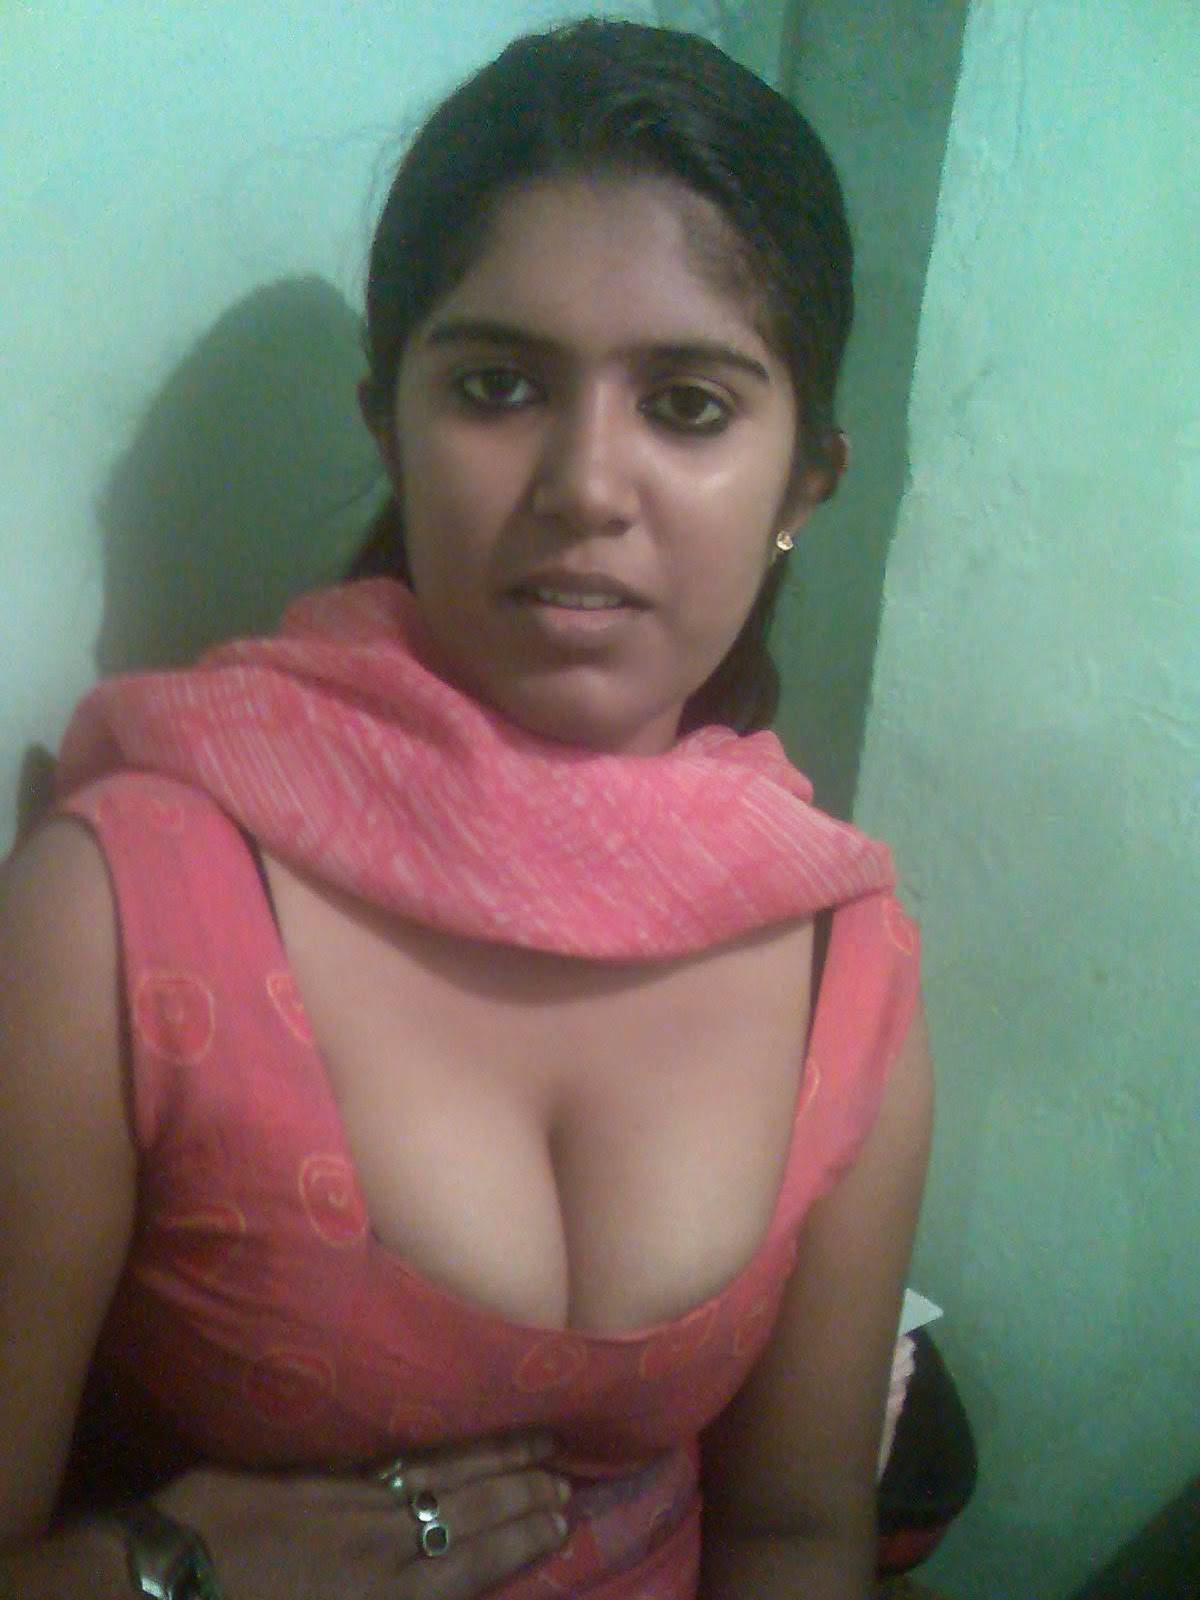 Bangla desi muslim bhabi loves hubby039s friend hiddencam hq